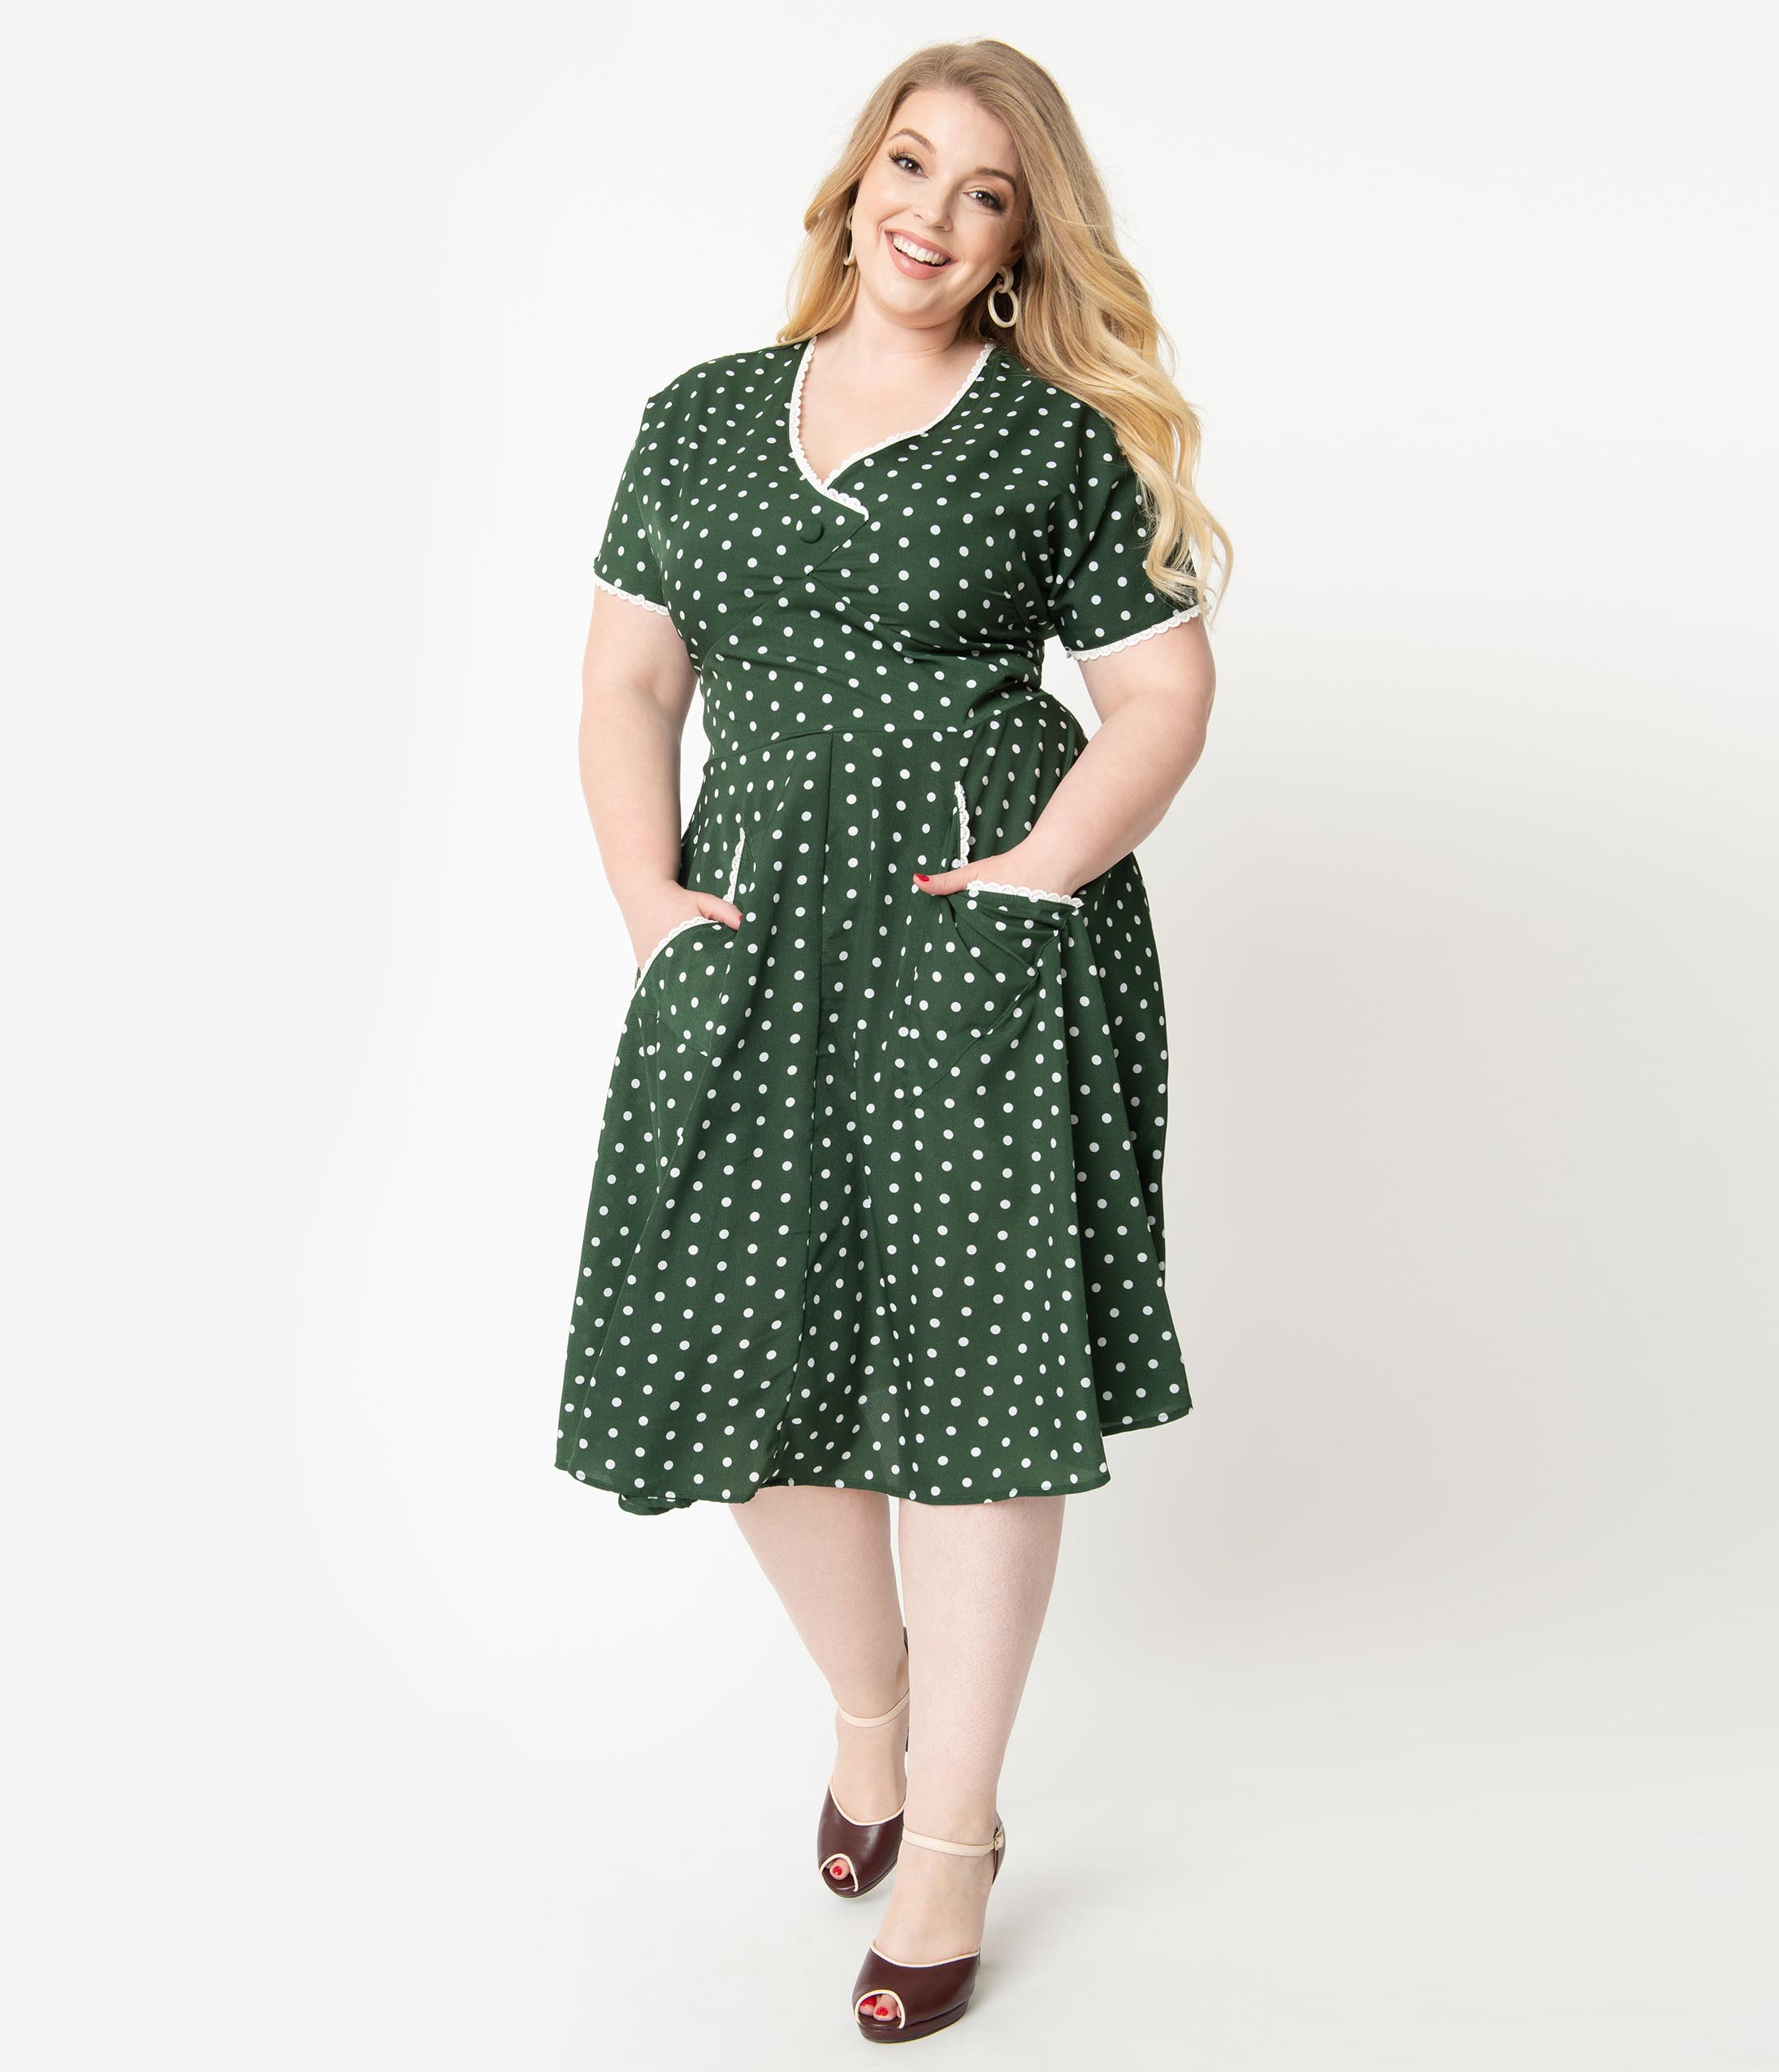 500 Vintage Style Dresses for Sale | Vintage Inspired Dresses Unique Vintage Plus Size 1950S Dark Green  White Polka Dot Goldie Swing Dress $78.00 AT vintagedancer.com